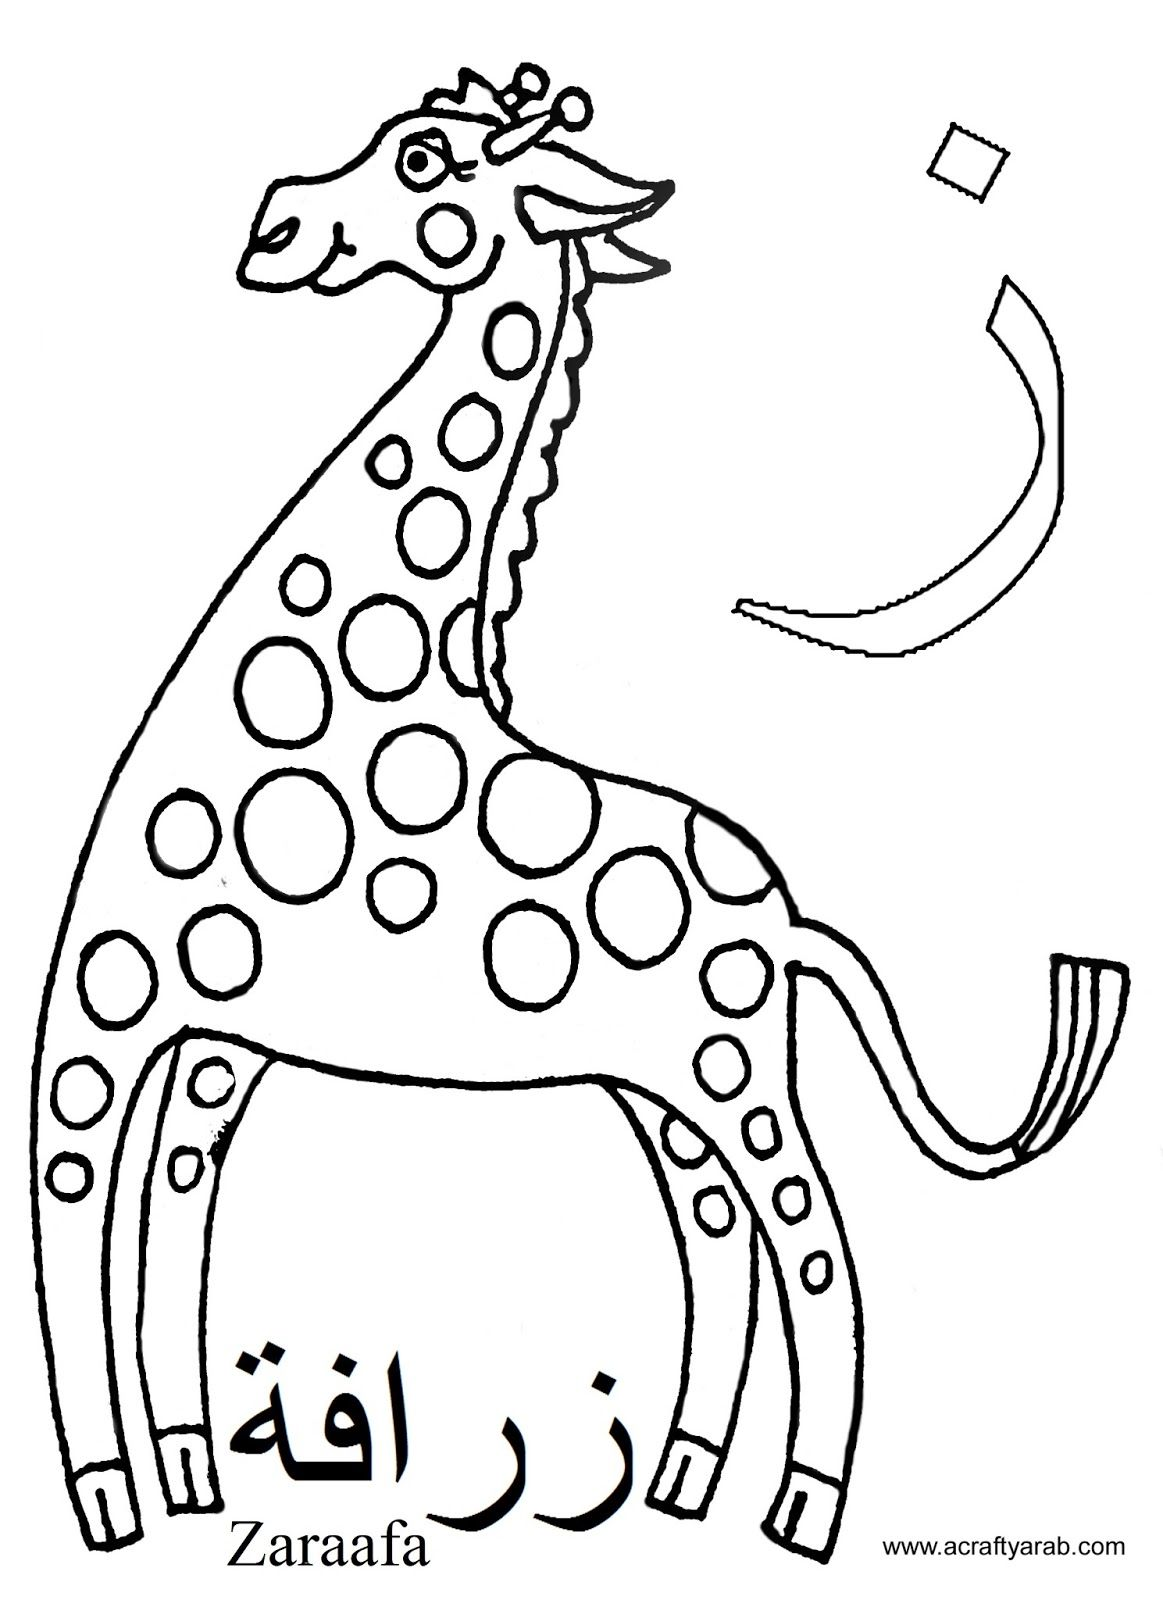 Baby animals coloring pages best coloring pictures pictures to pin on - A Crafty Arab Arabic Alphabet Coloring Pages Zayn Is For Zaraafa